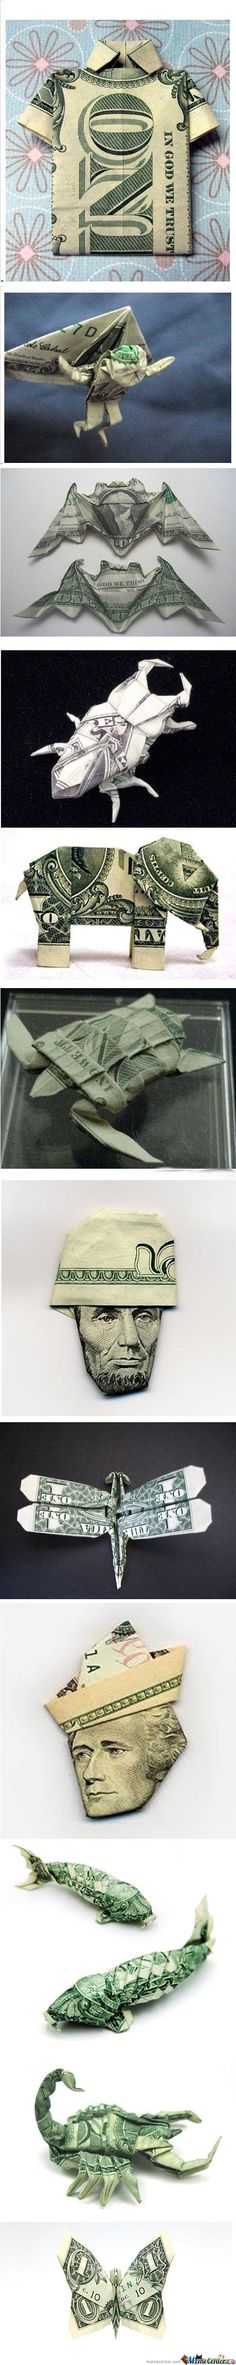 Creative ways to fold money when giving it as a gift